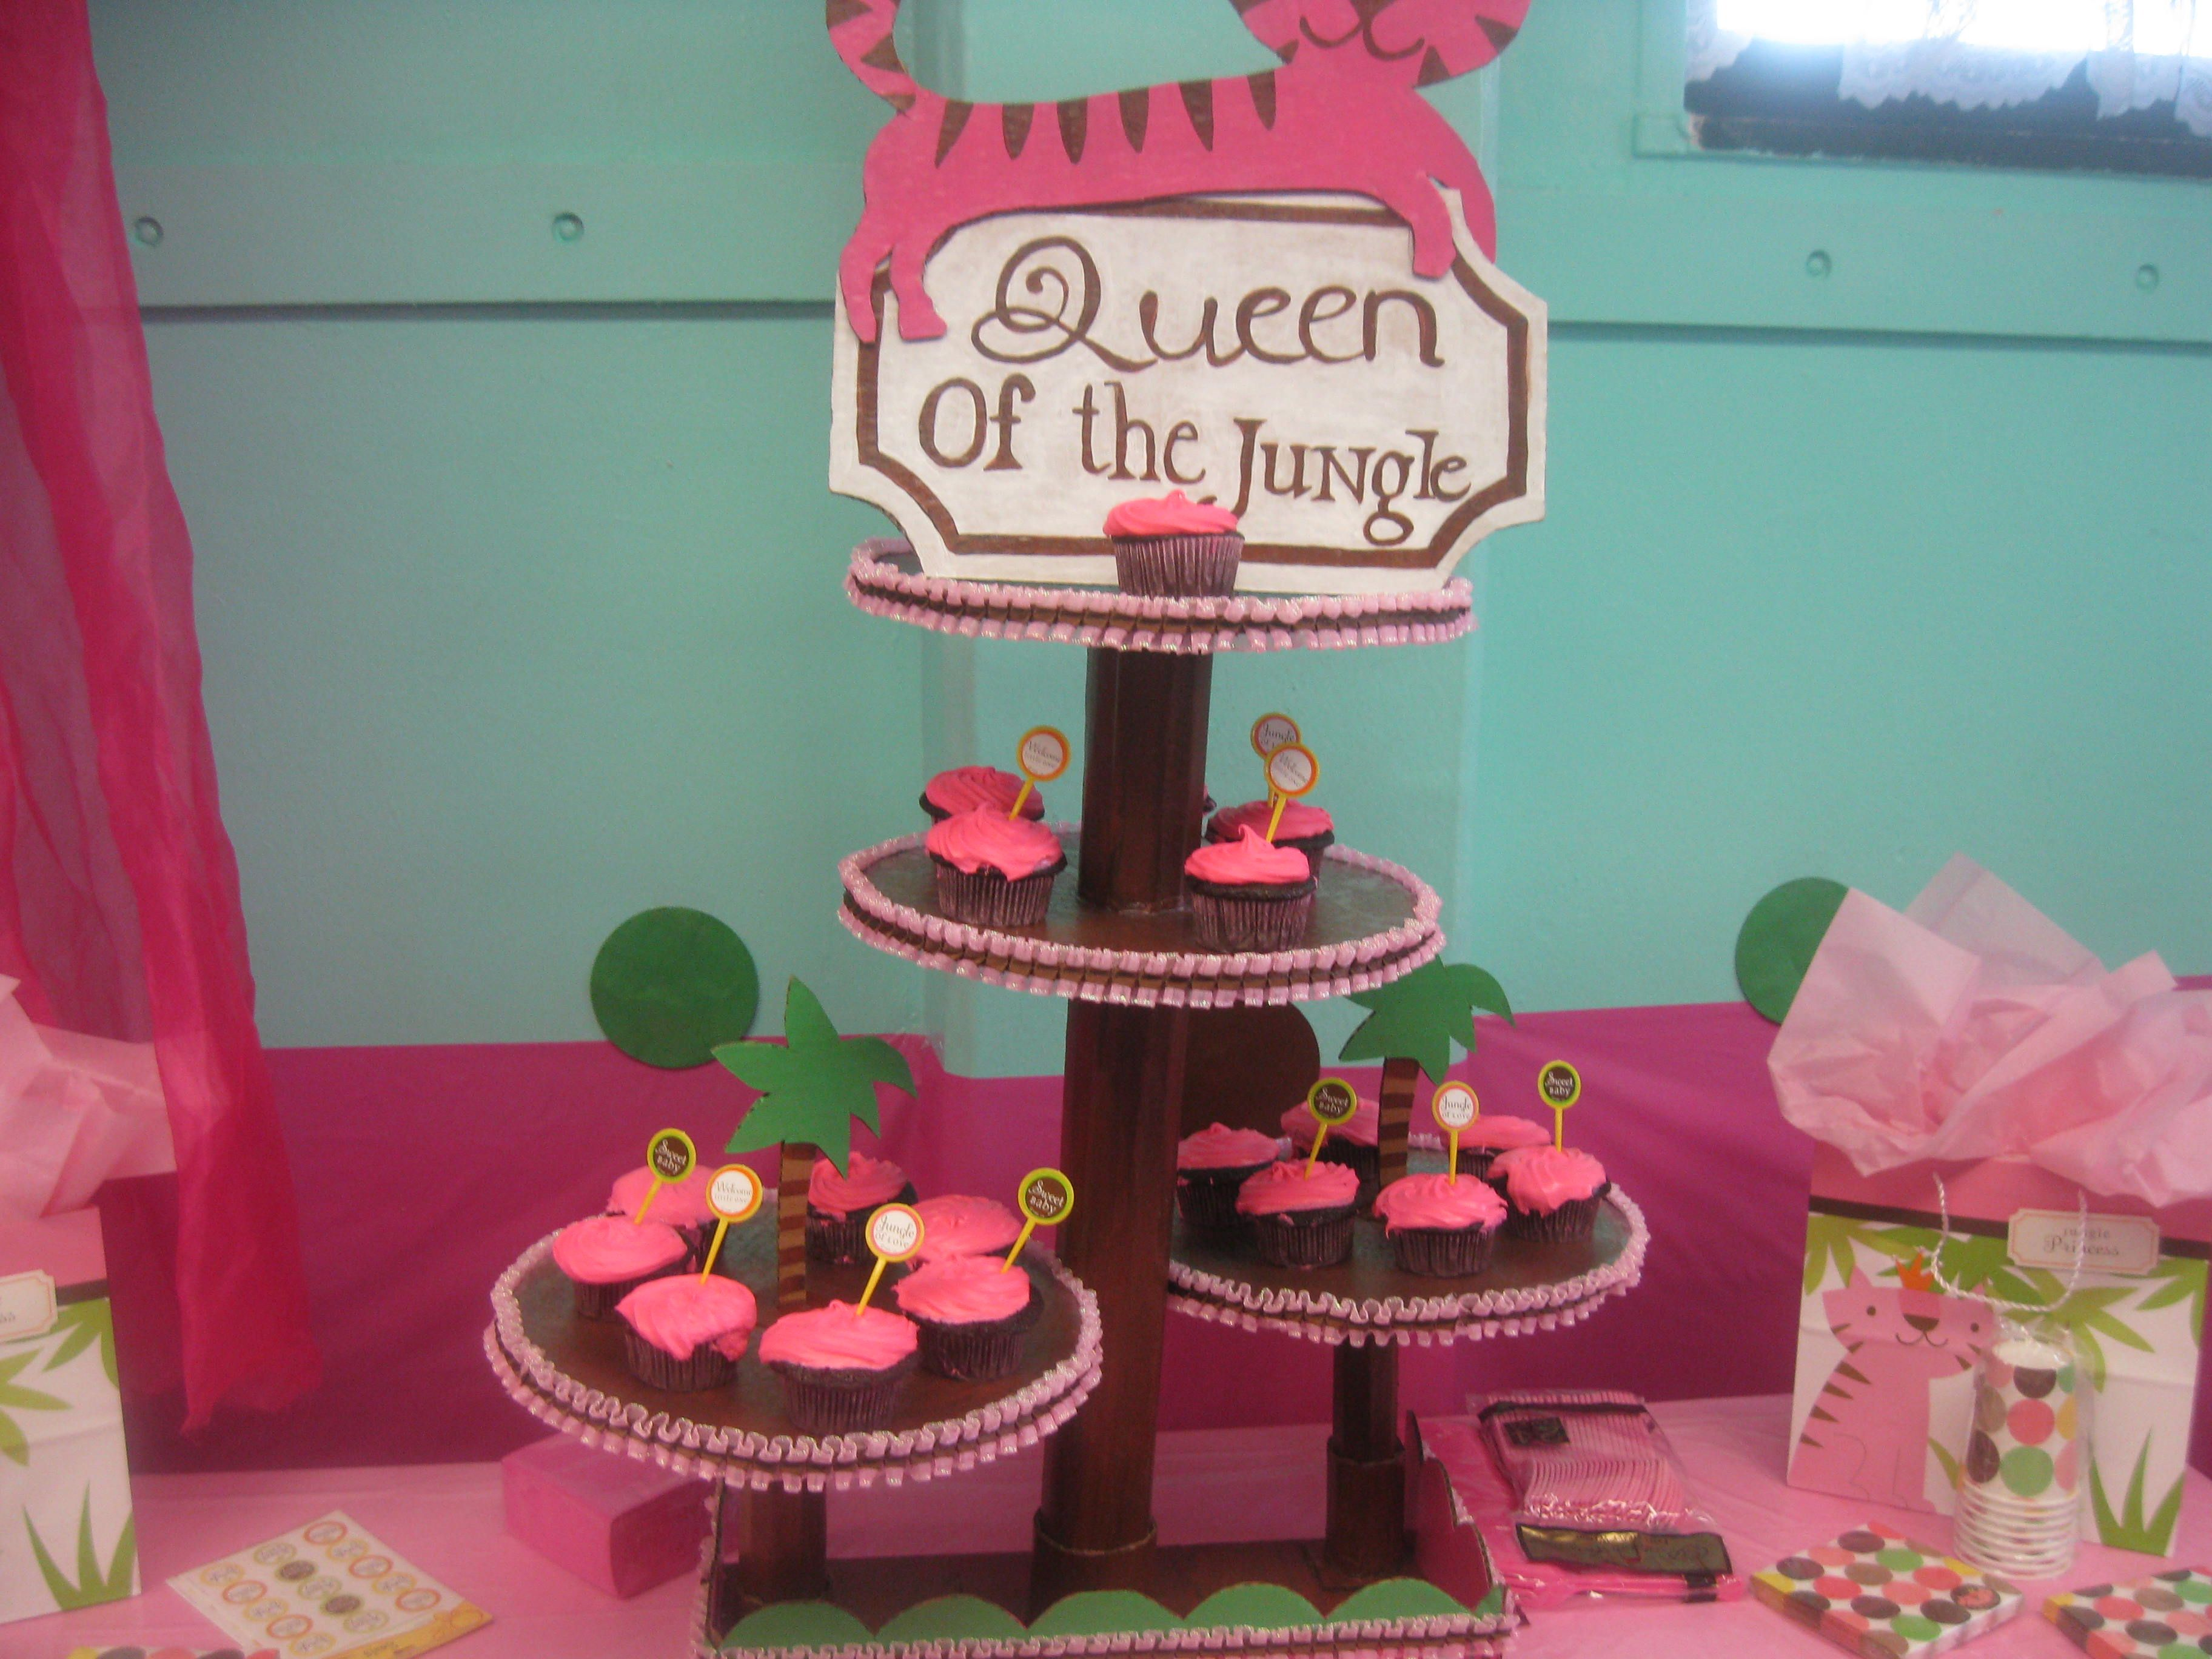 Cupcake stand for a baby shower